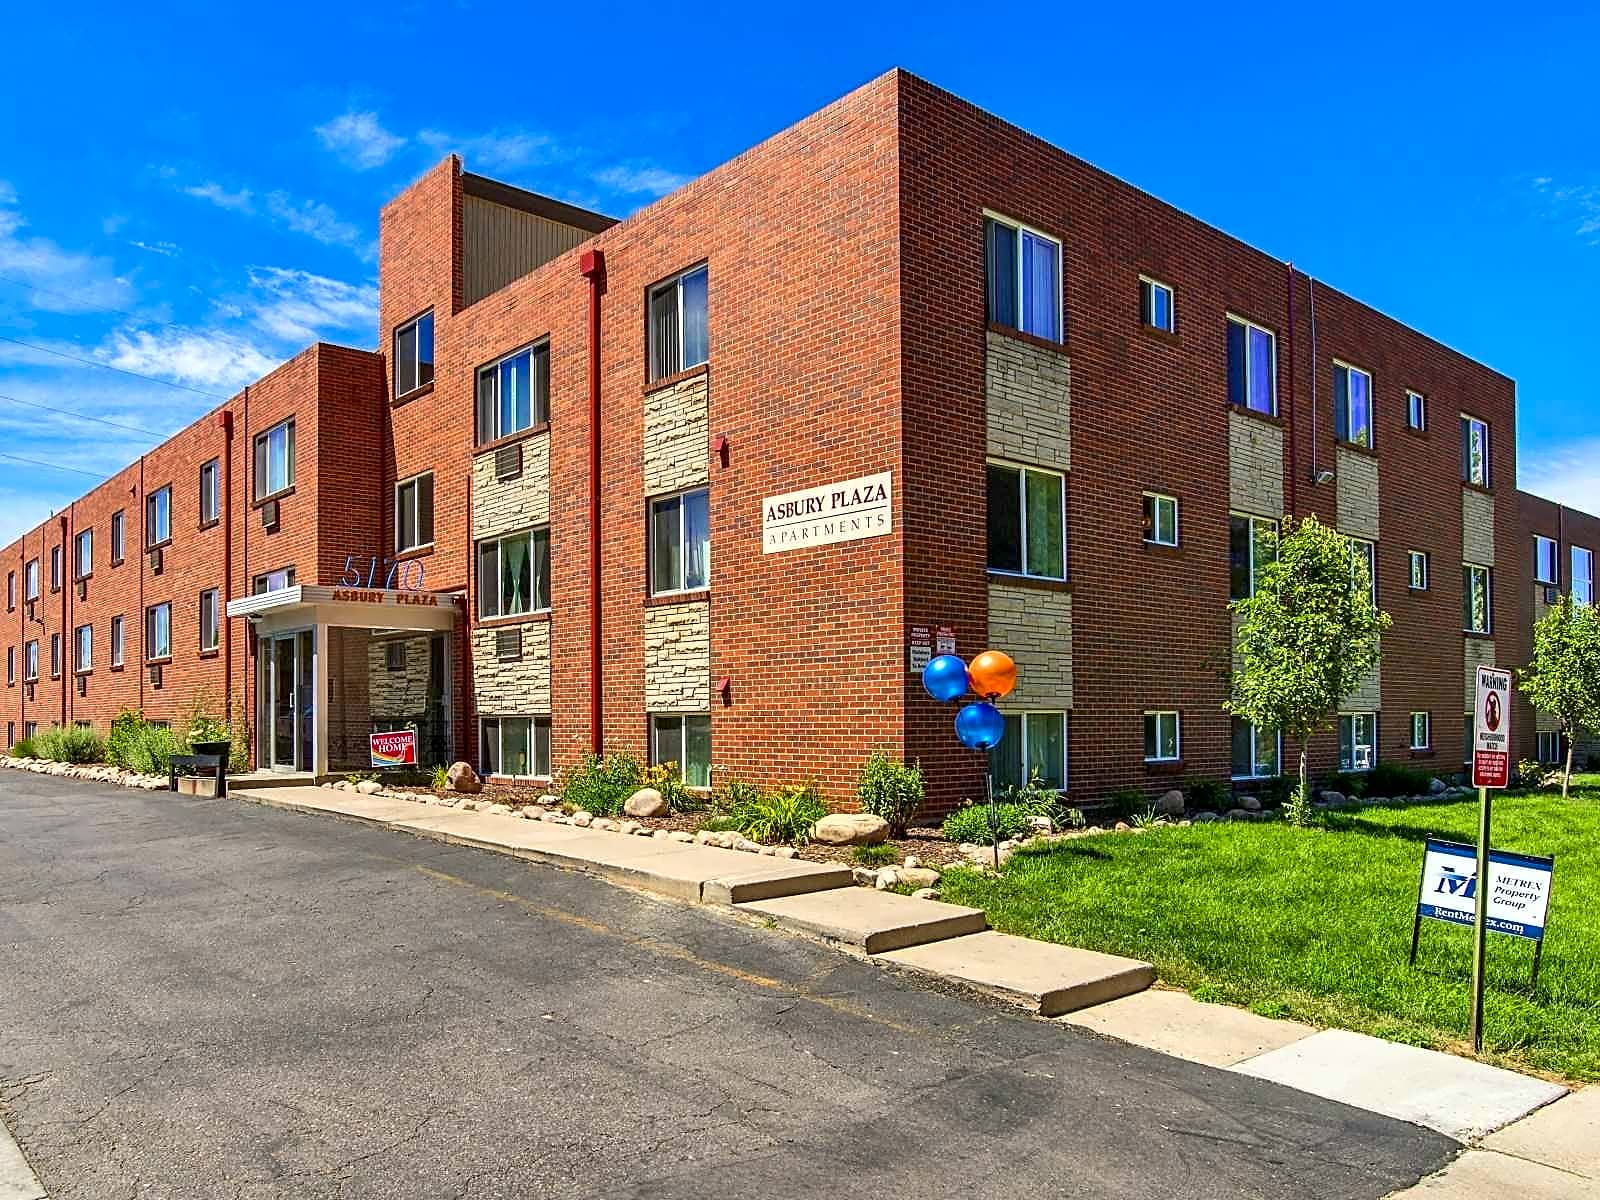 Apartments Near Westwood Asbury Plaza for Westwood College Students in Denver, CO